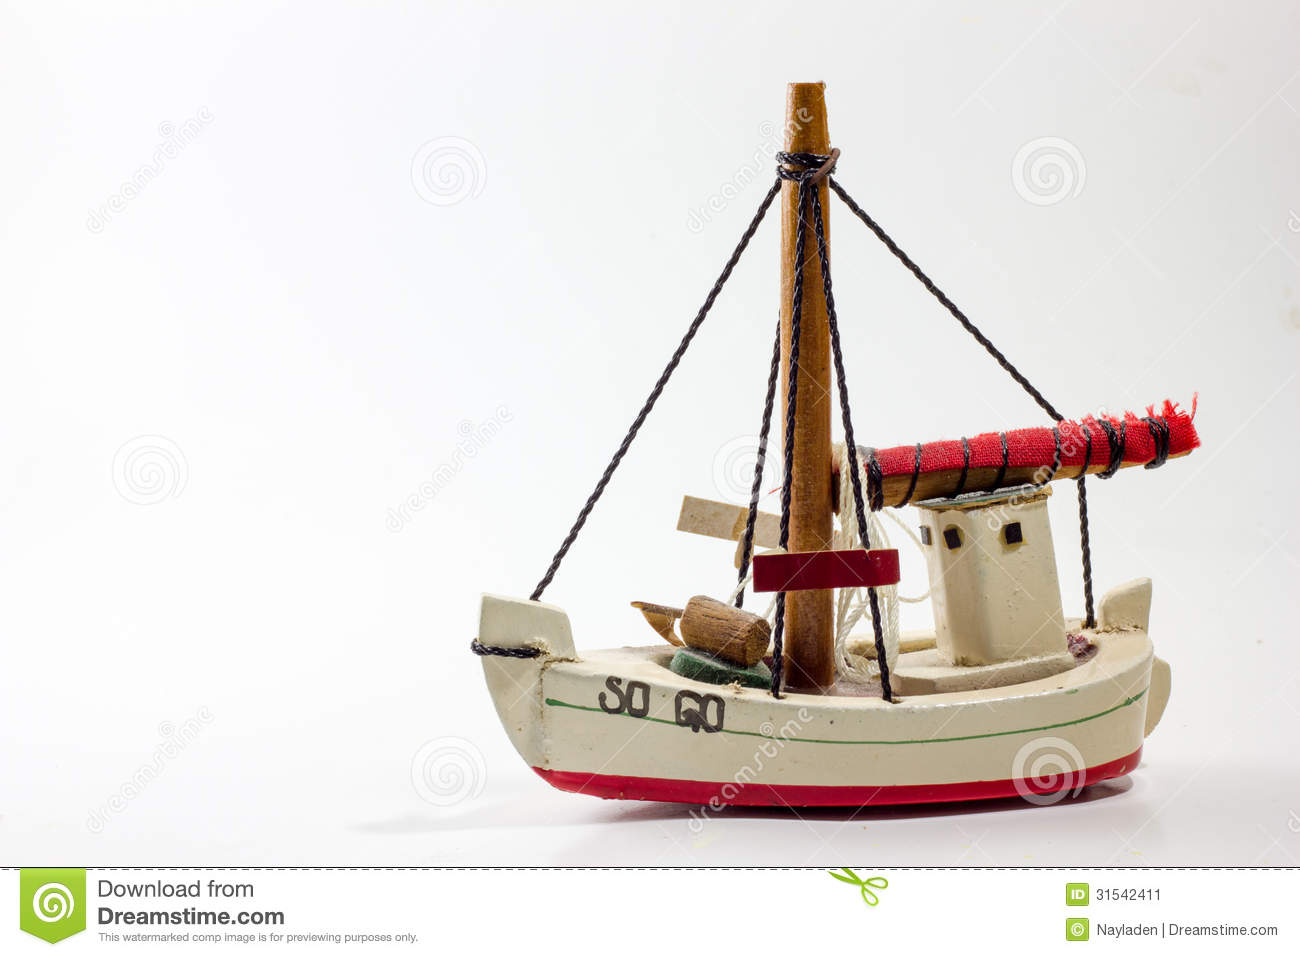 Old Wooden Toy Boat Stock Image - Image: 31542411